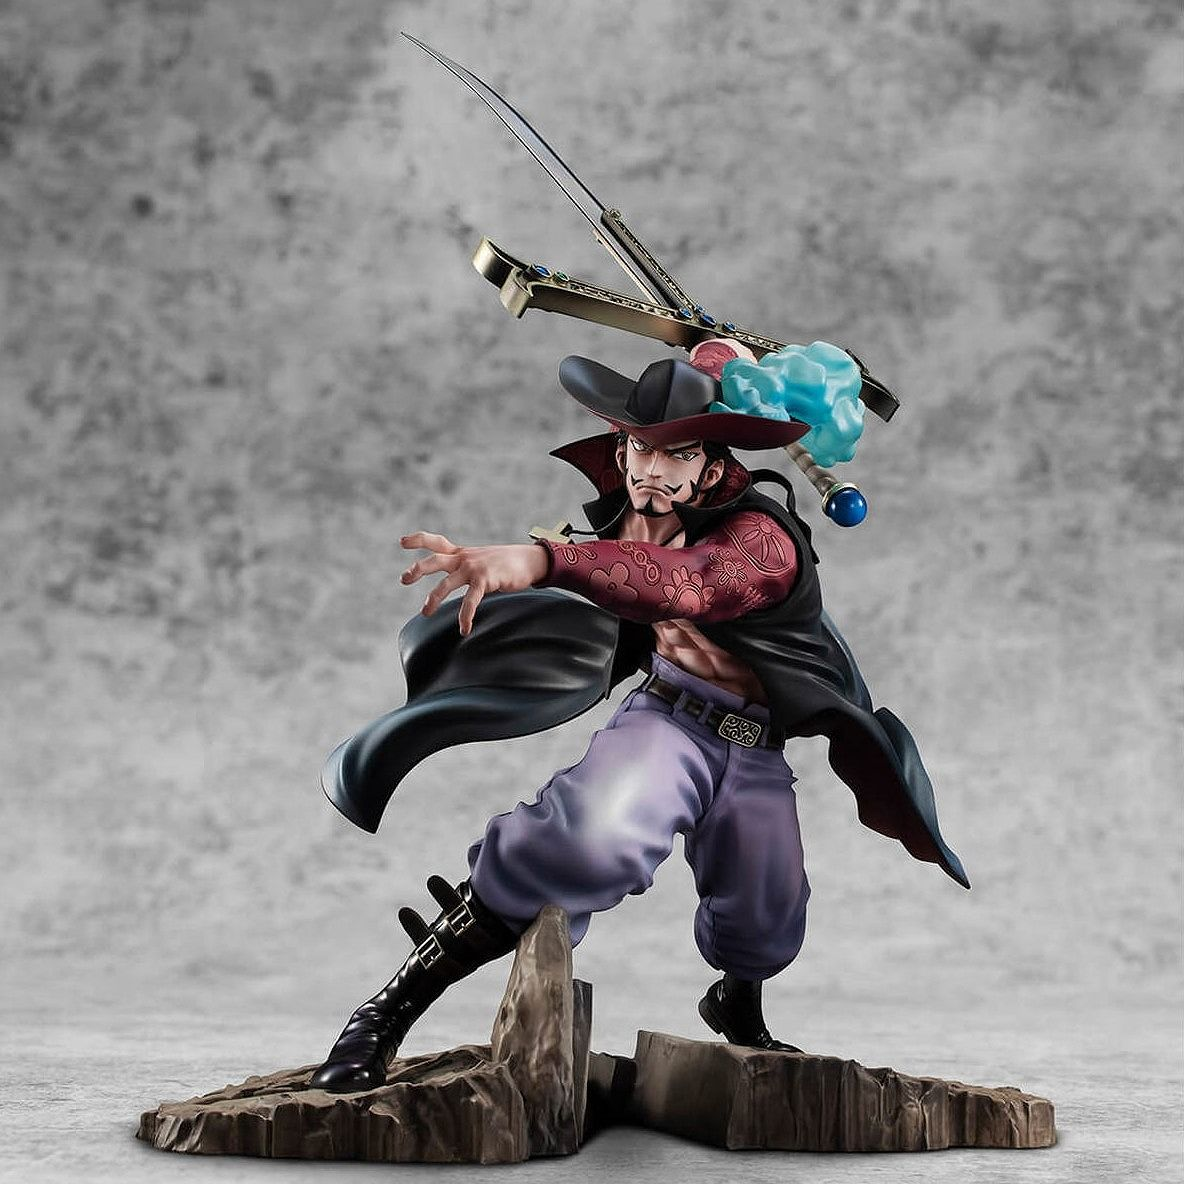 Pin on Action figures anime awesome